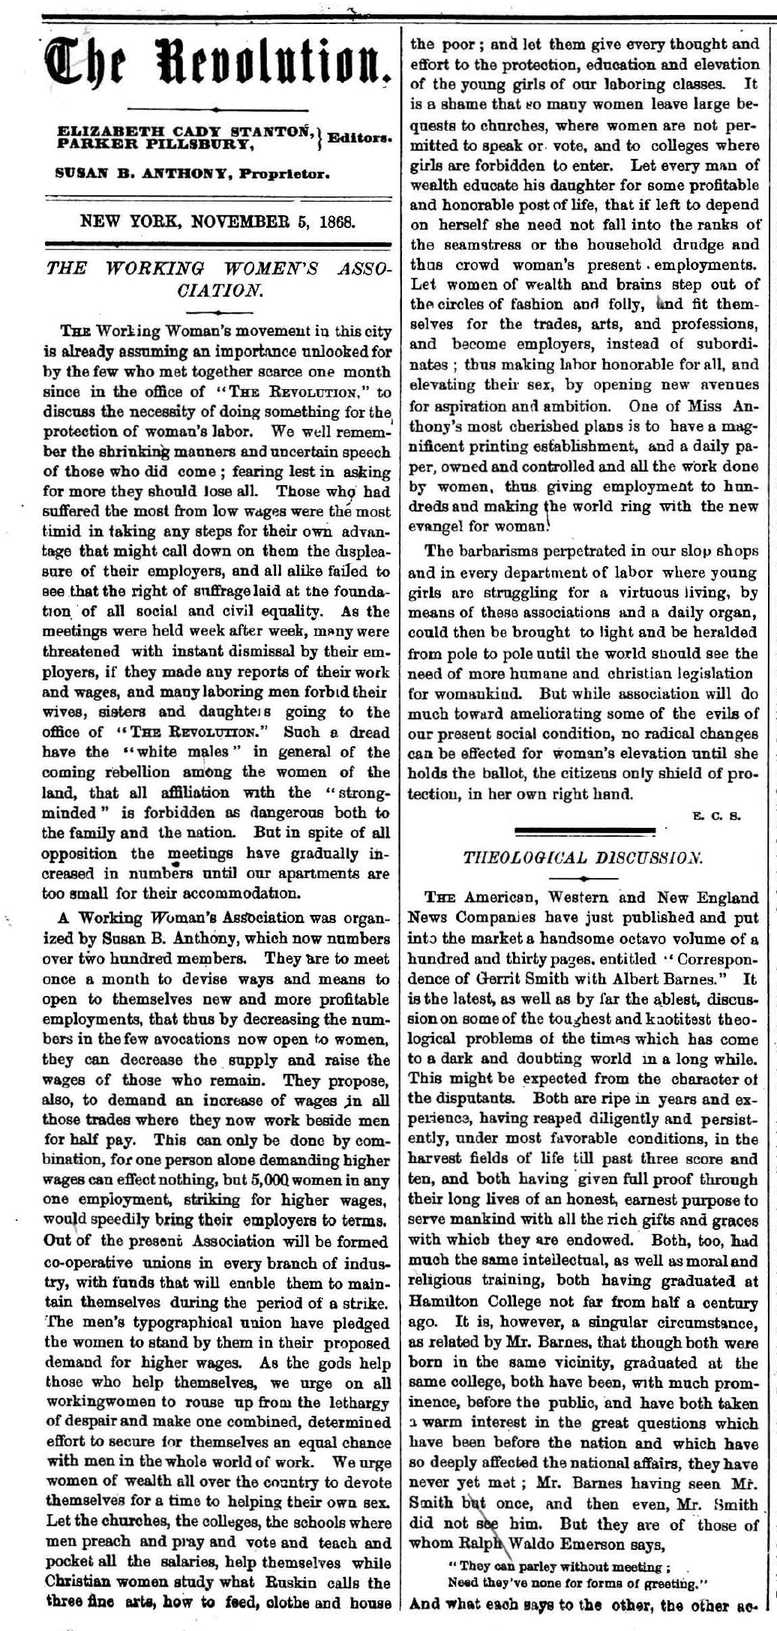 The-Revolution-Susan-B.-Anthony's-Suffrage-Women's-Rights-Newspaper-November-5,-1868